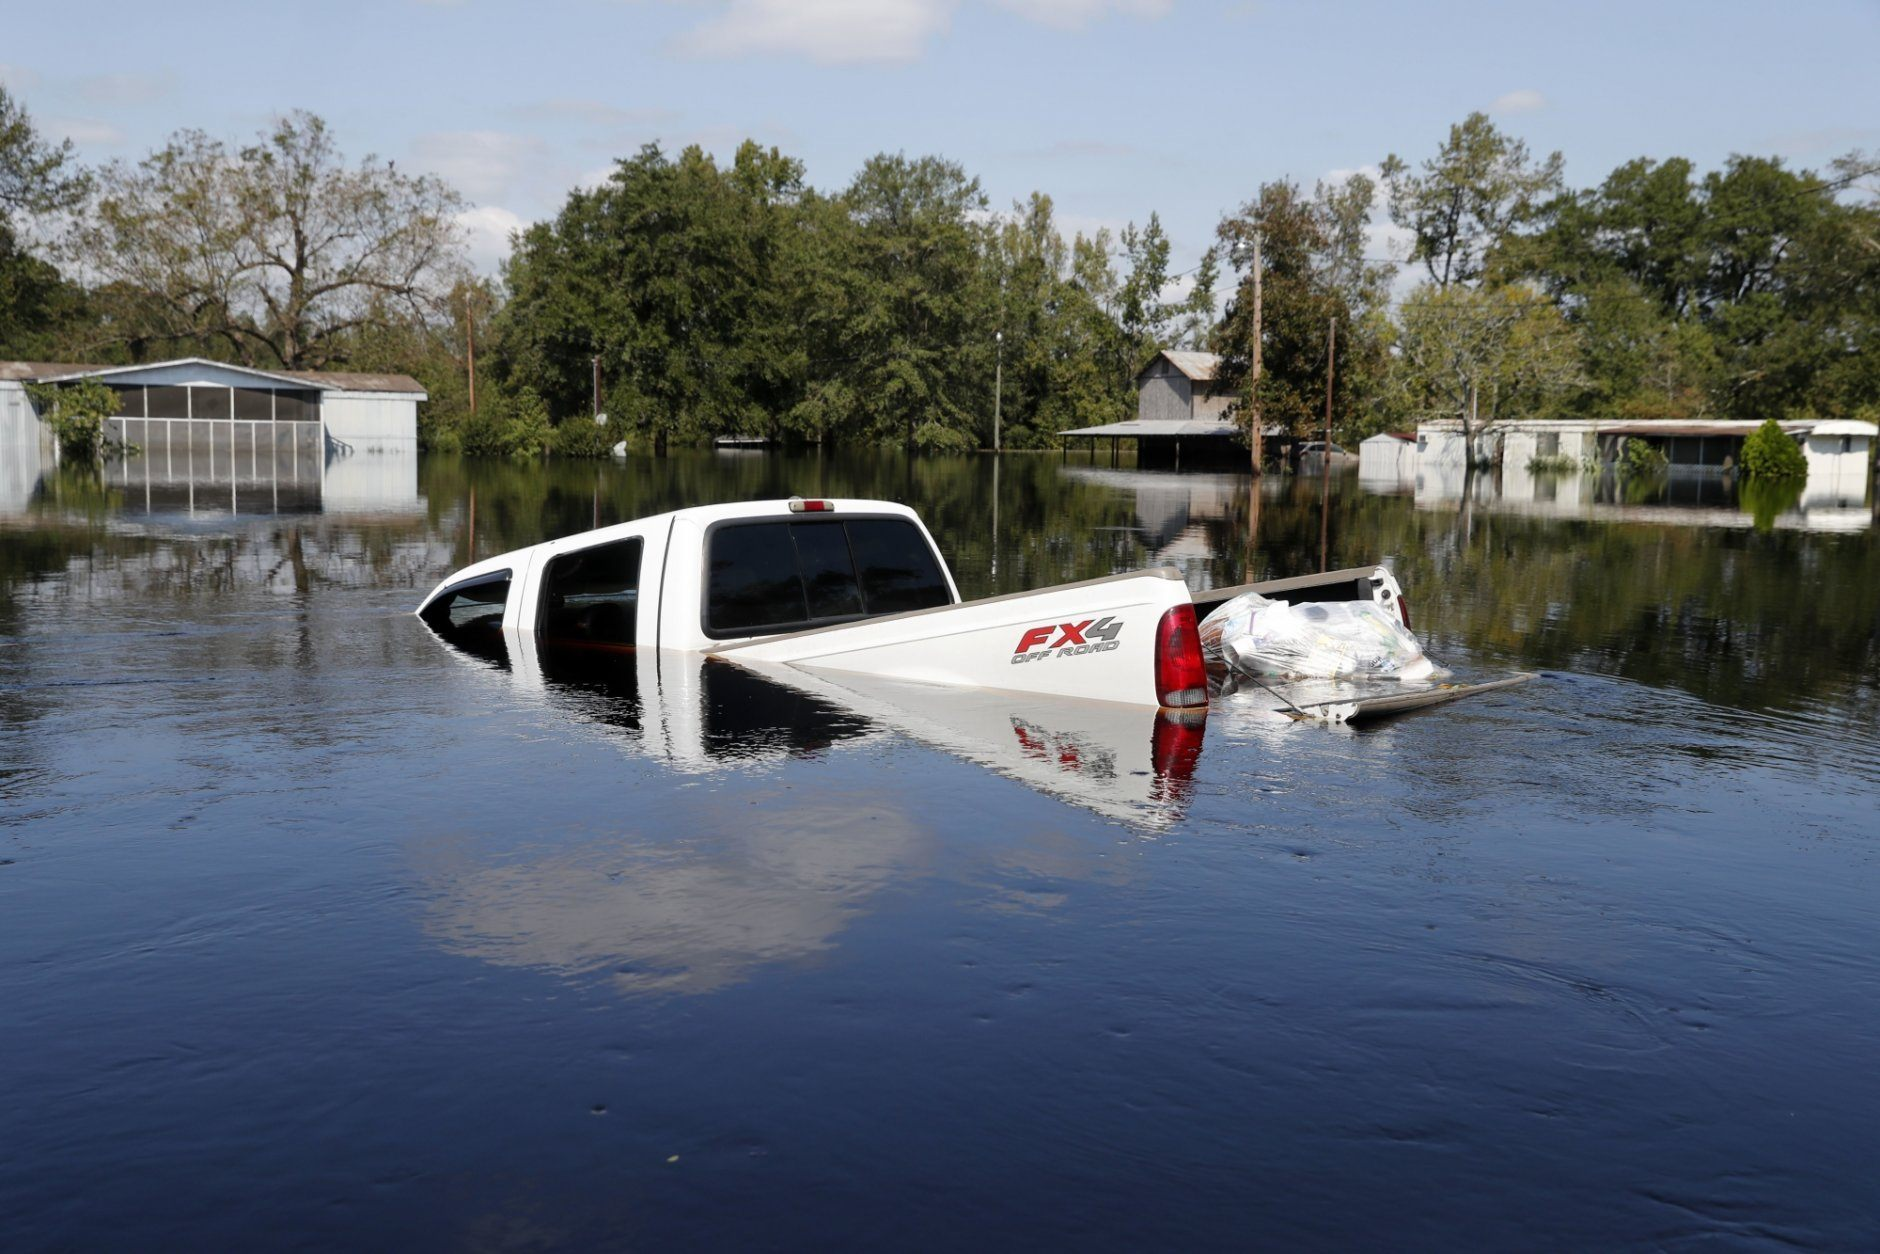 FILE - In this Sept. 21, 2018, file photo, a submerged truck sits in floodwaters in the aftermath of Hurricane Florence in Nichols, S.C. Nichols suffered devastating flooding during Hurricane Matthew 2016 and Florence in 2018. (AP Photo/Gerald Herbert, File)